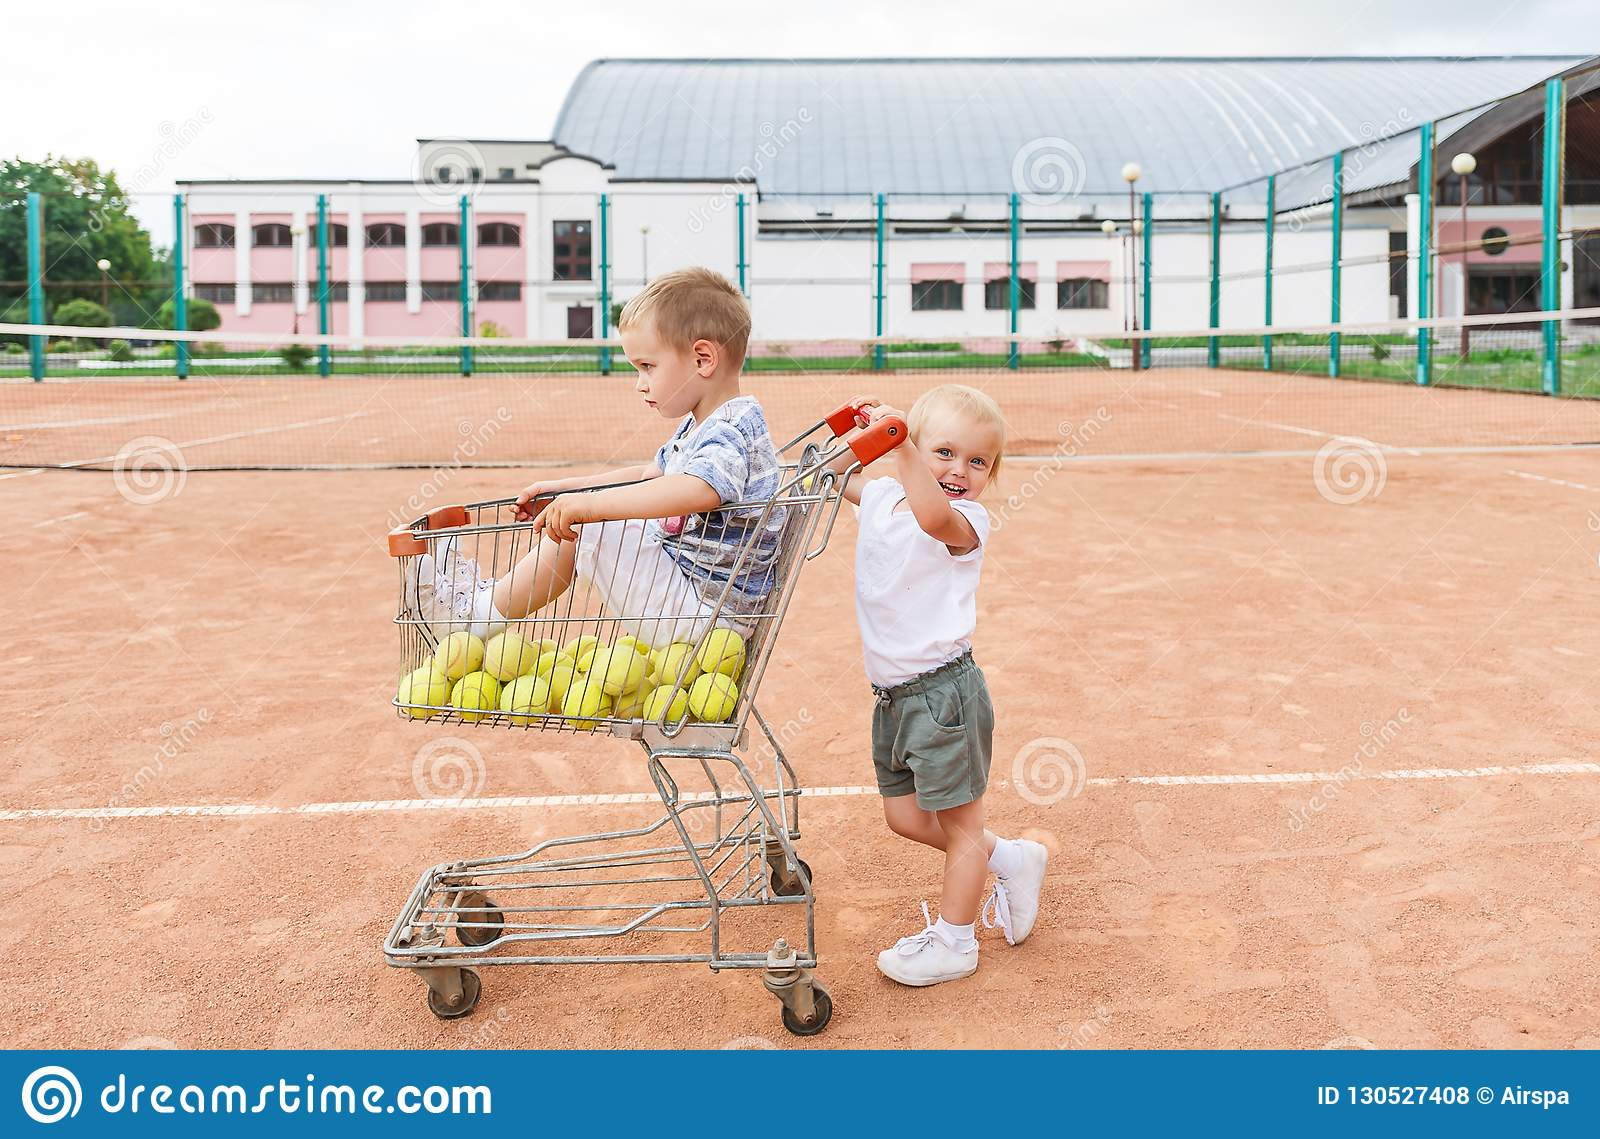 Two children playing on tennis court. Little boy and tennis balls in the shopping cart.